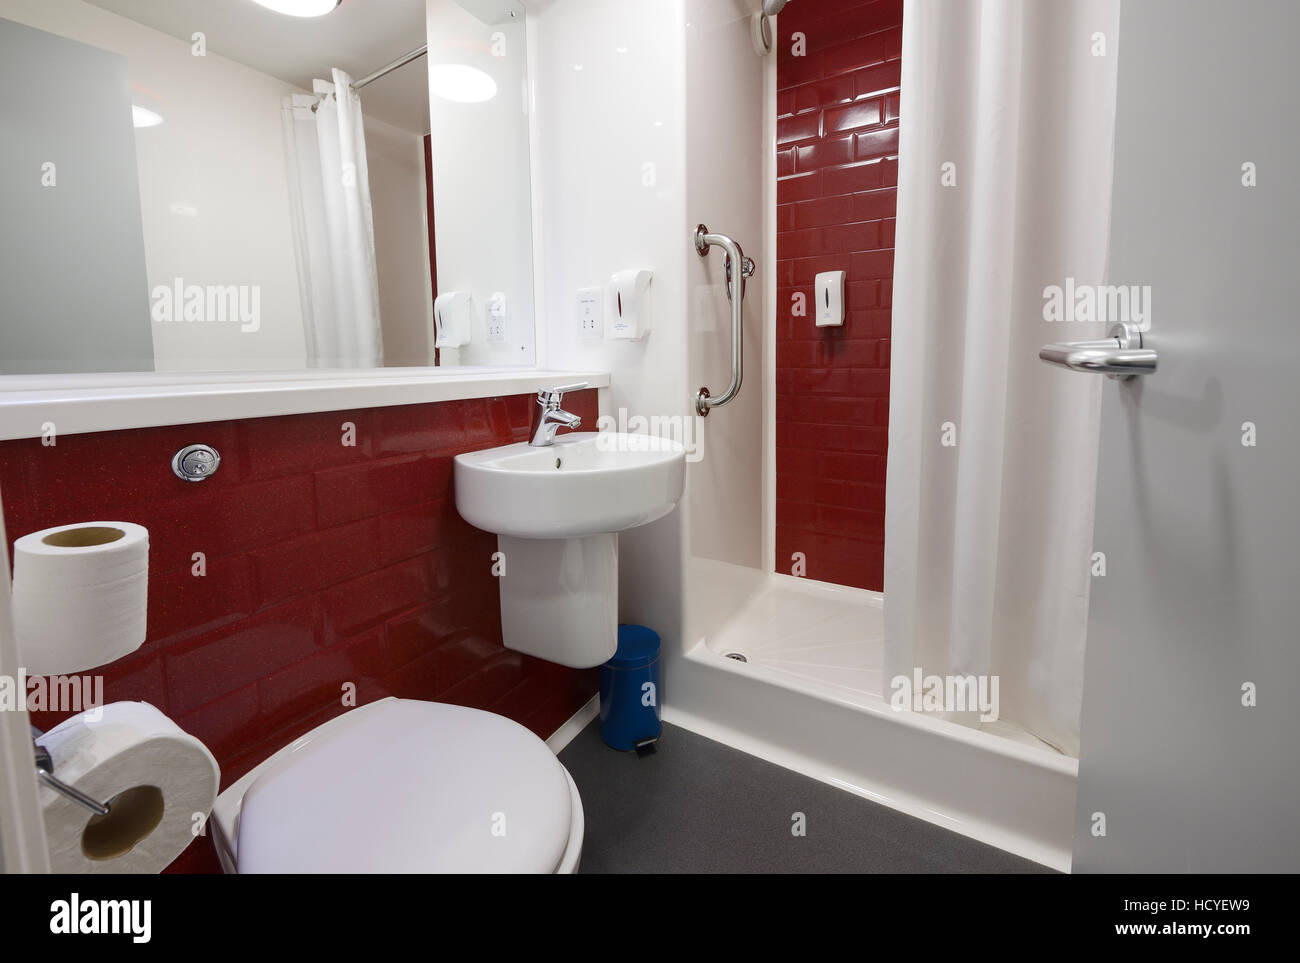 The bathroom in a budget chain hotel - Stock Image